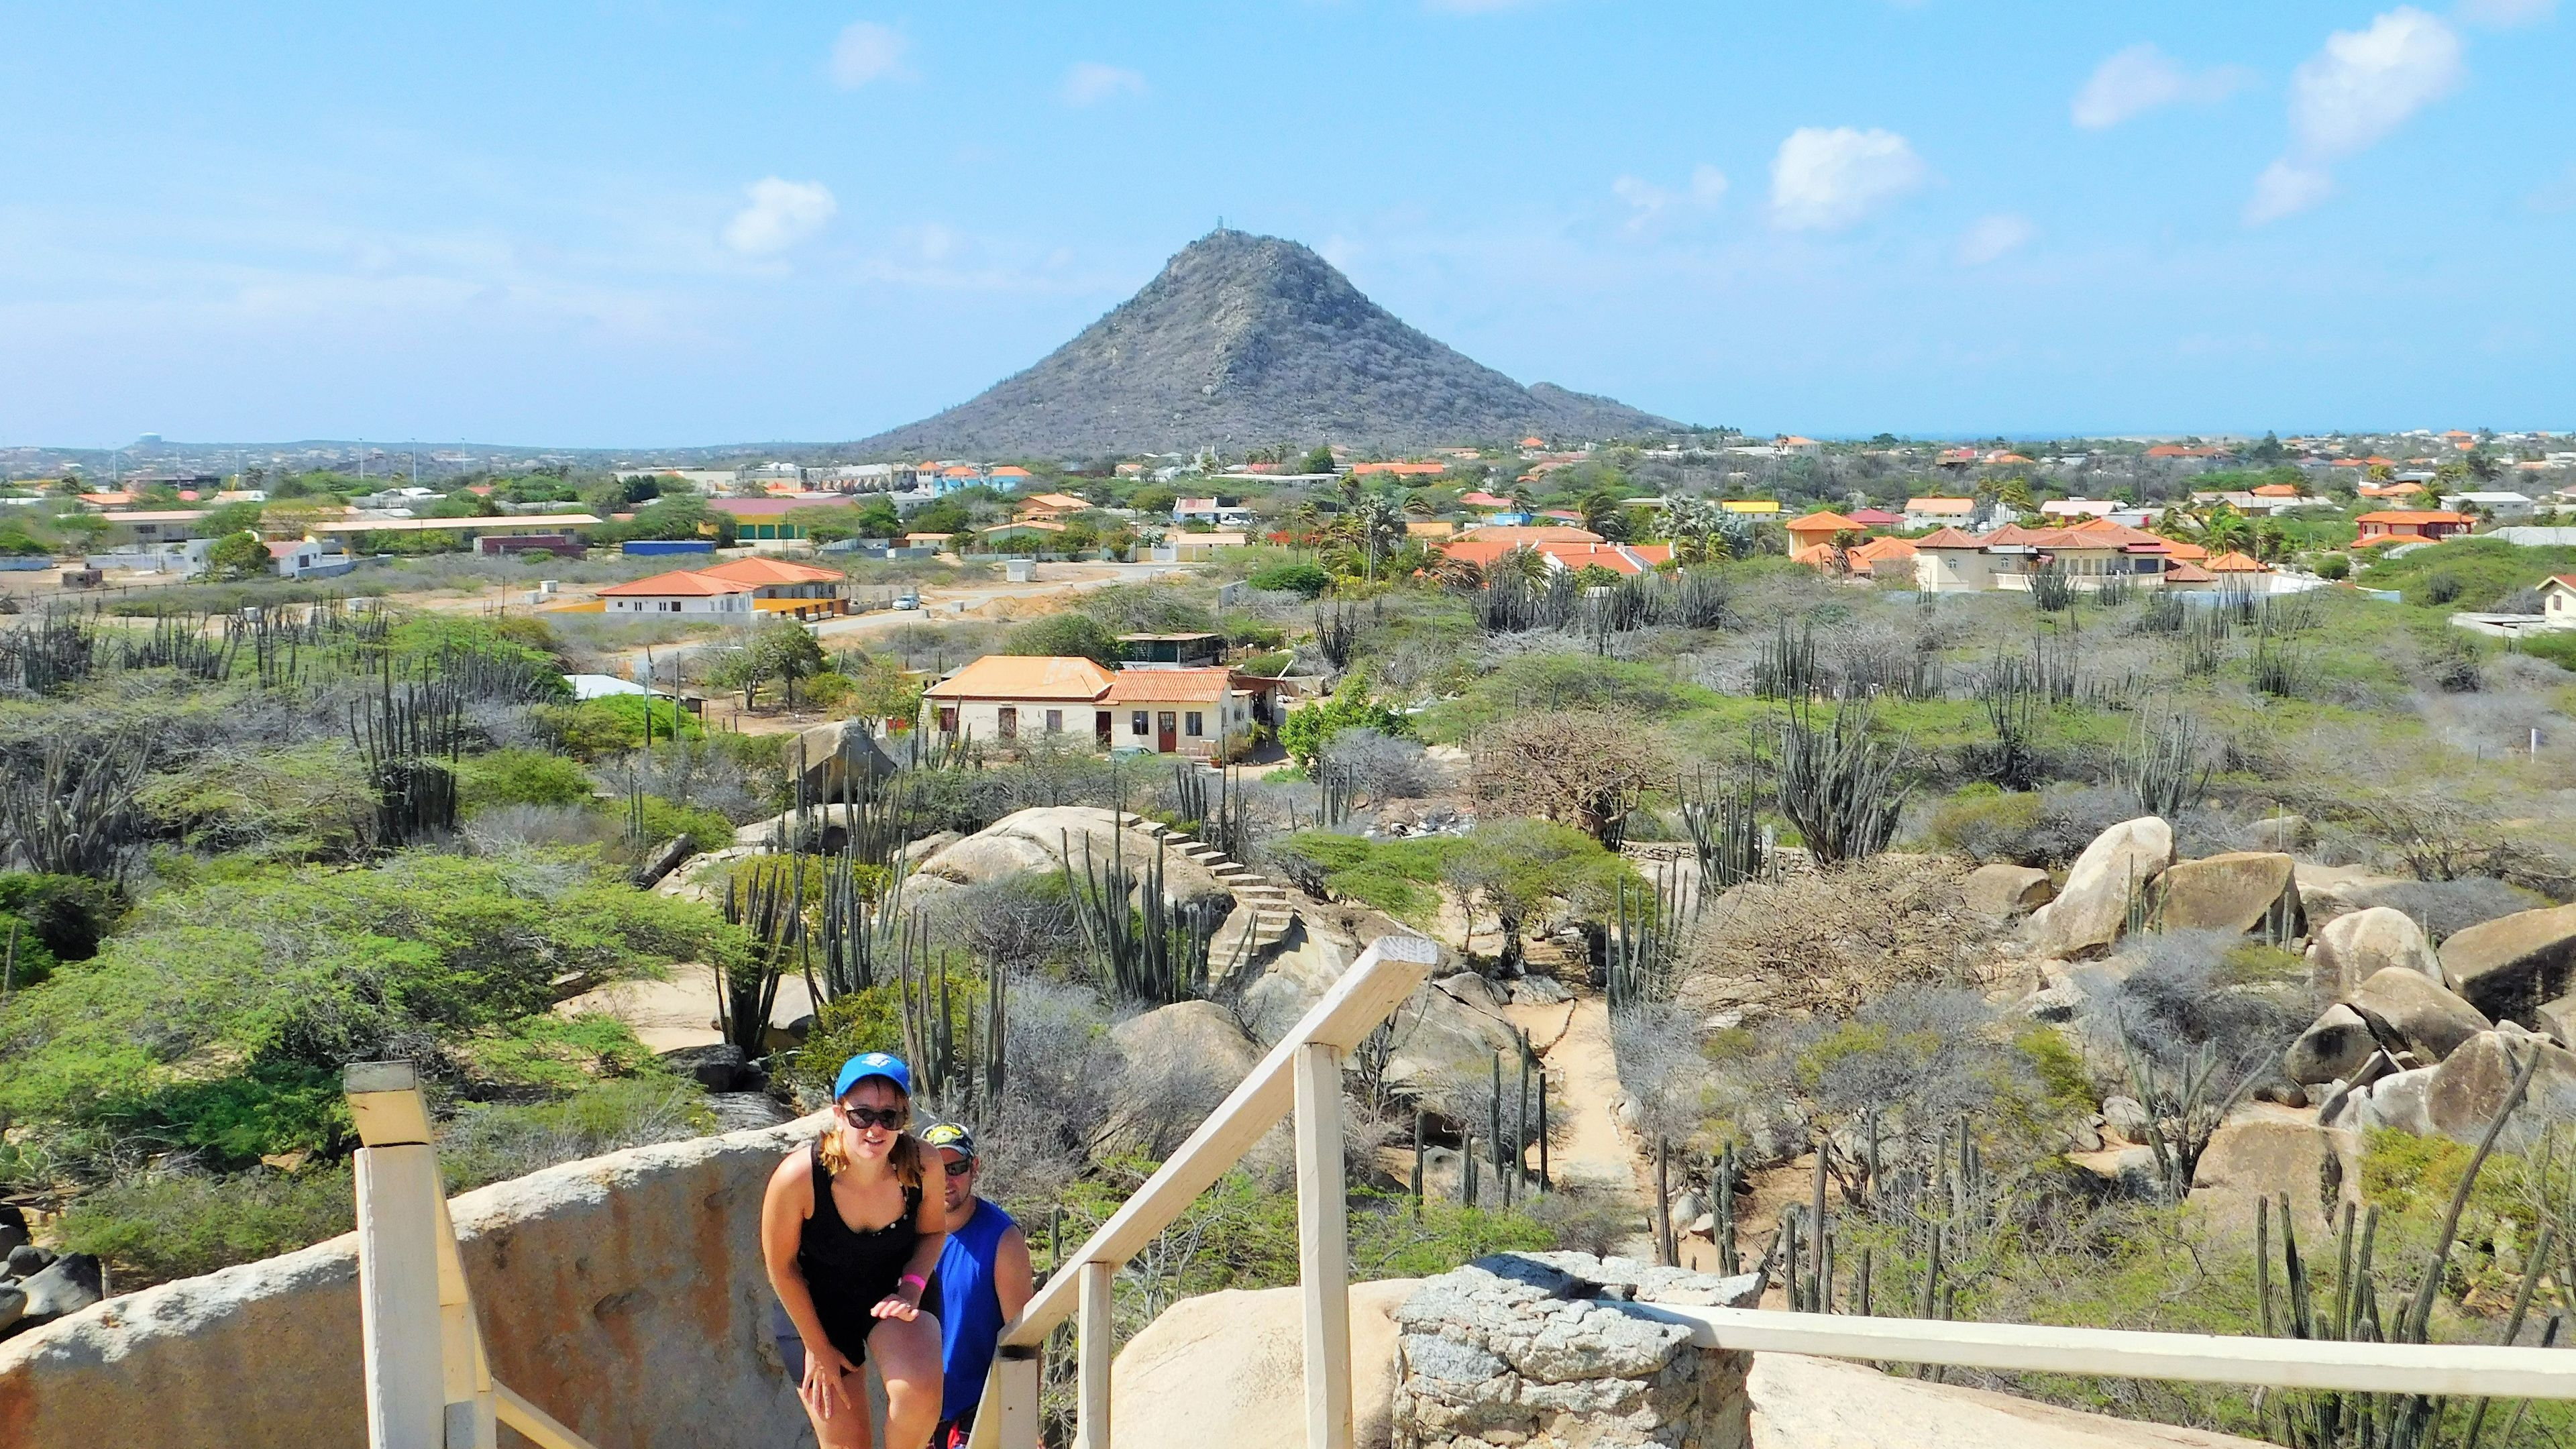 People walking up pathway to view in Aruba